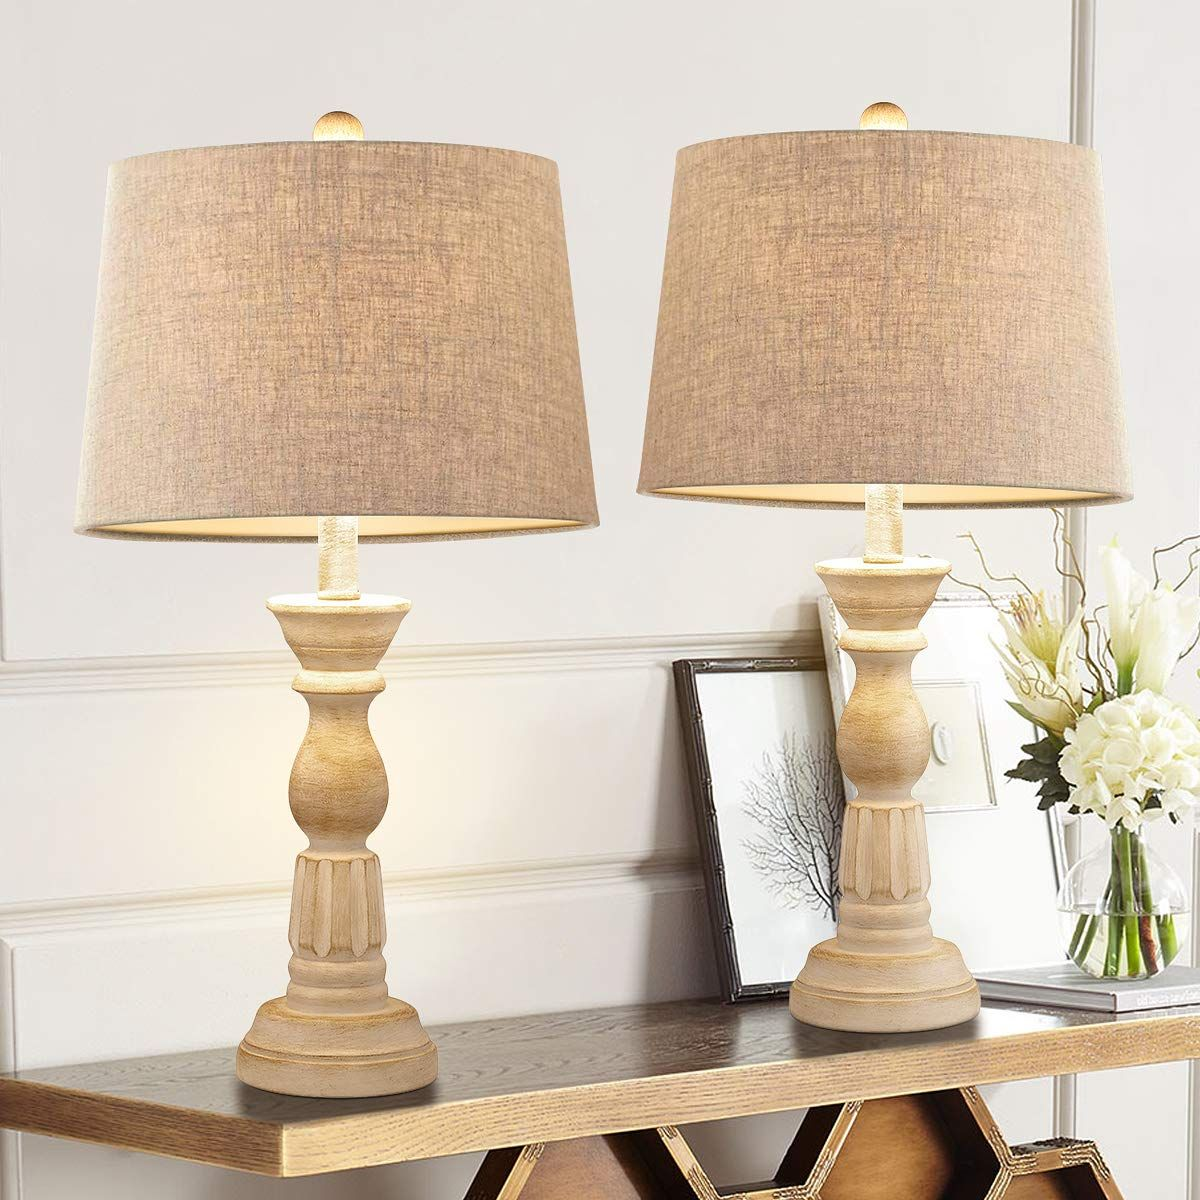 Pin By Fil Motel On Bedroom In 2020 Bedside Desk Lamps Rustic Table Lamps Table Lamp Sets